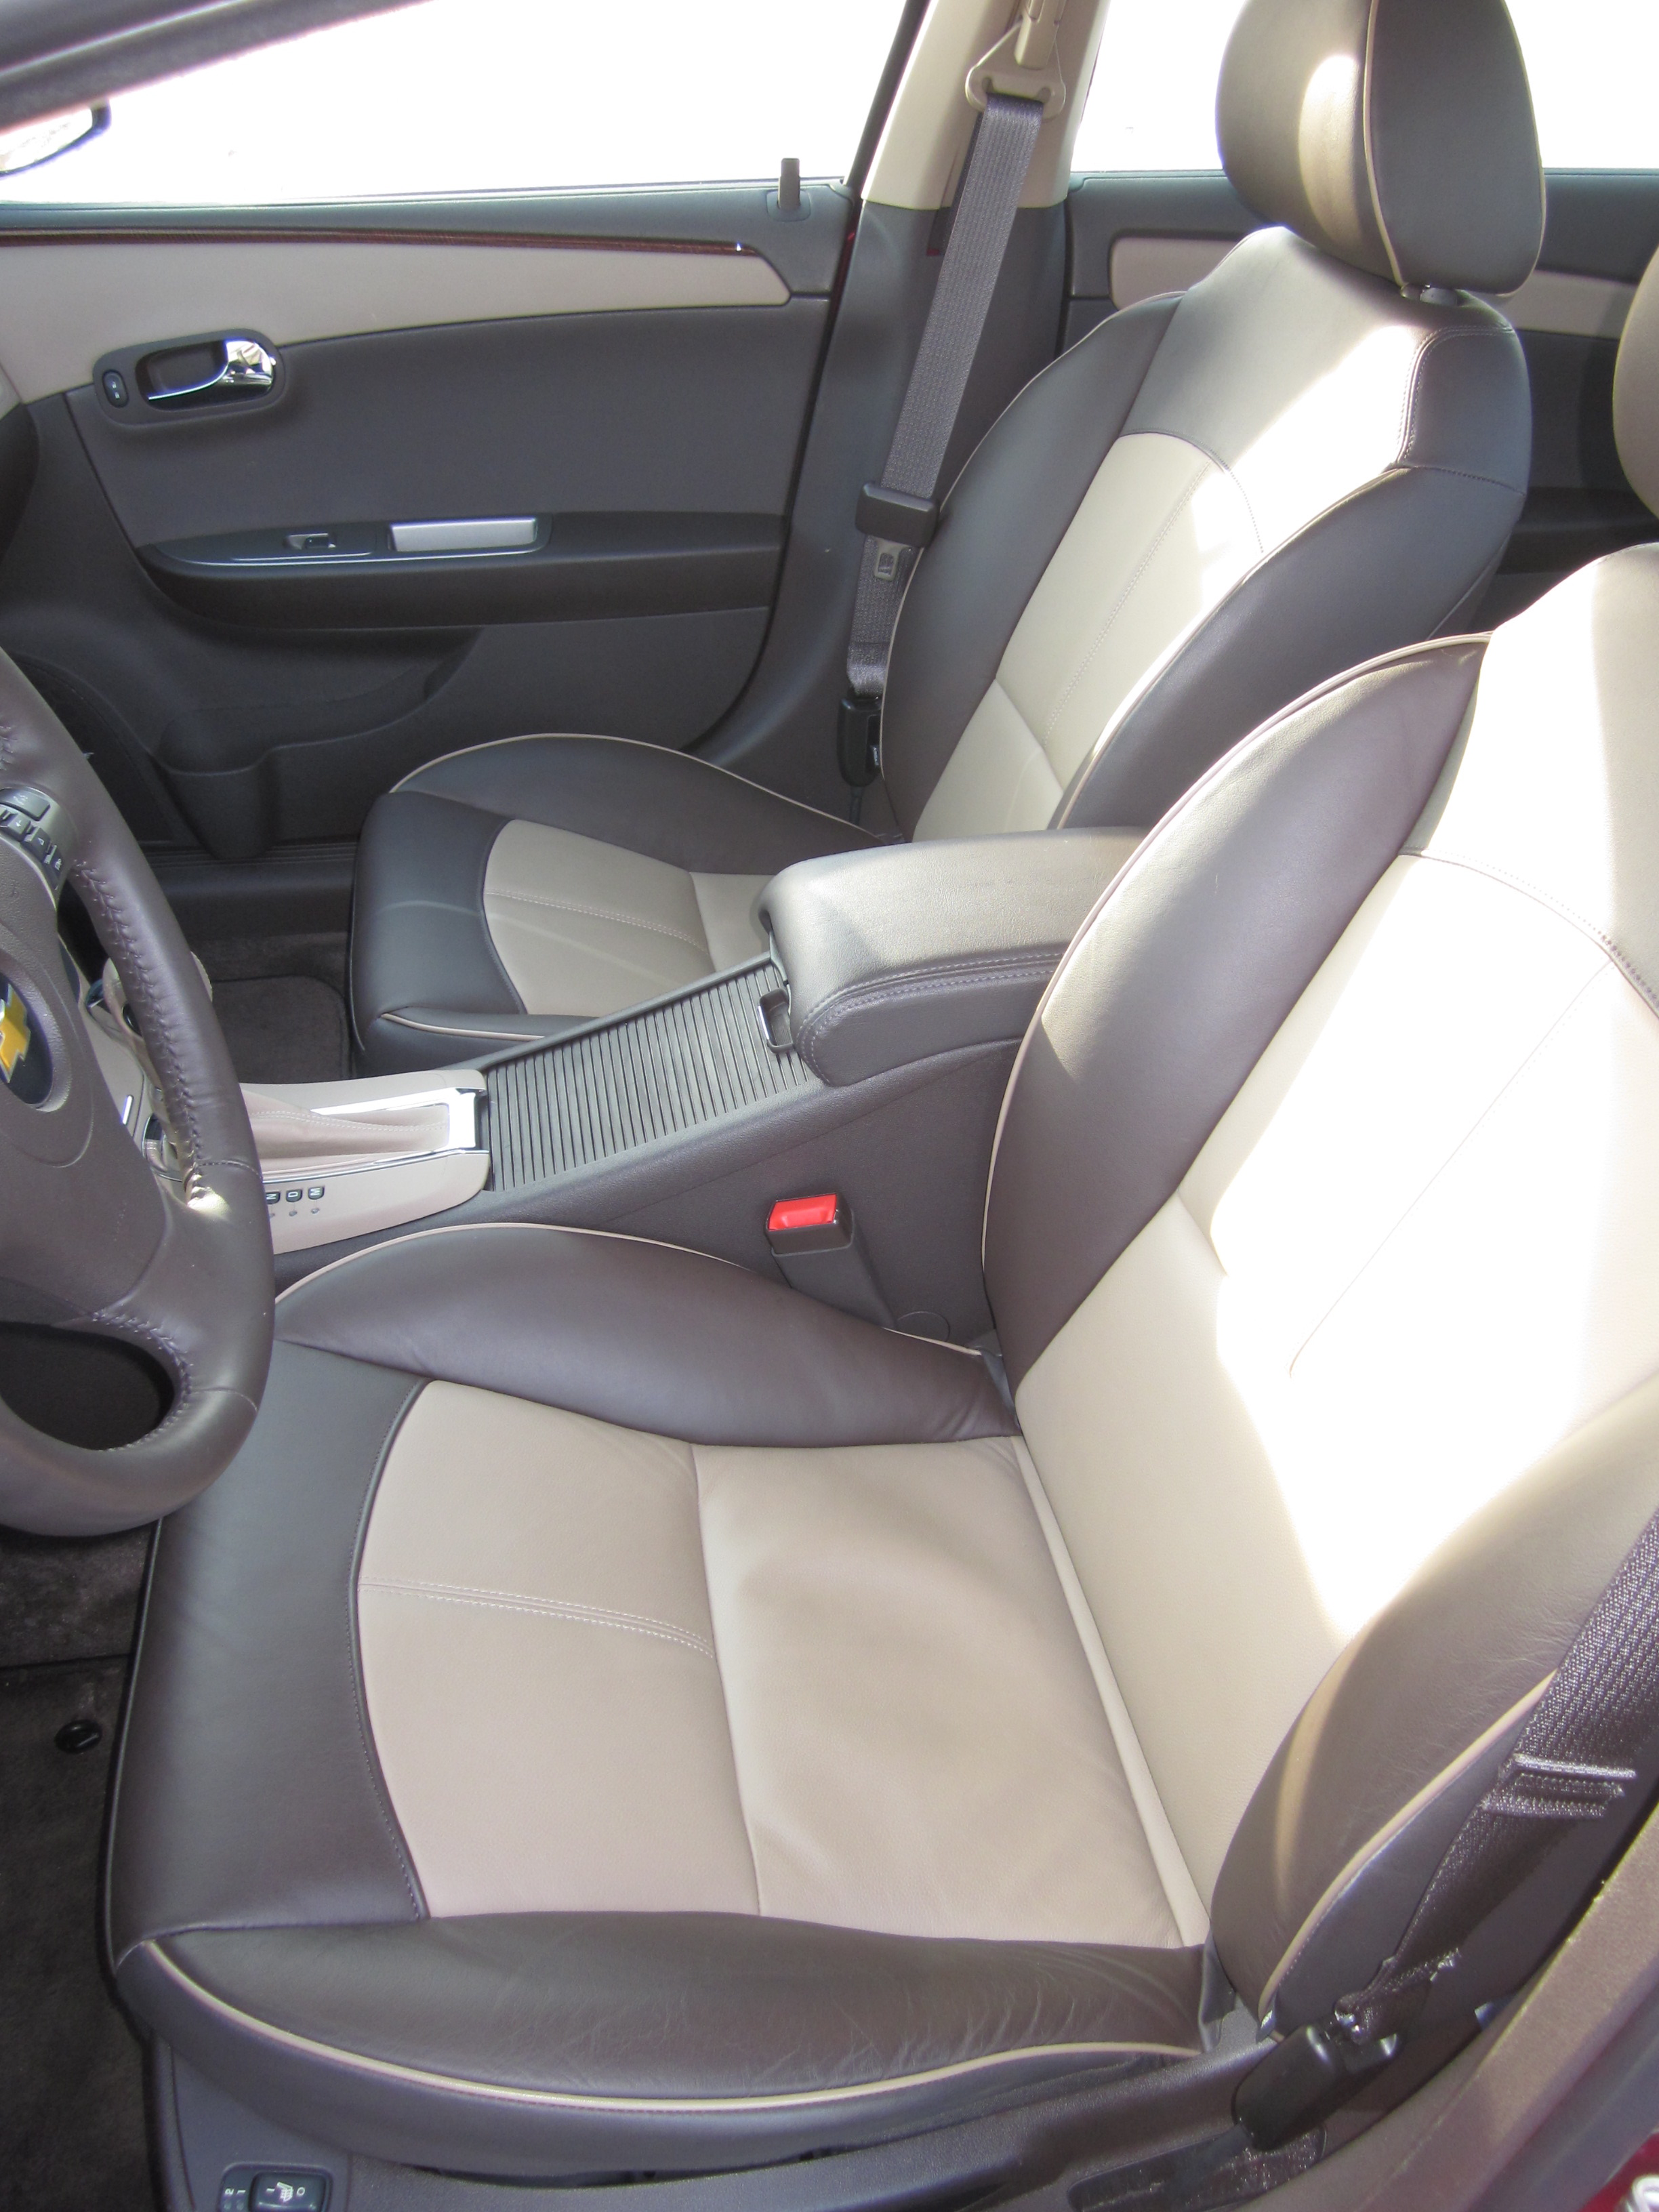 2011 Chevrolet Malibu Review Chevy Lt Select To View Enlarged Photo